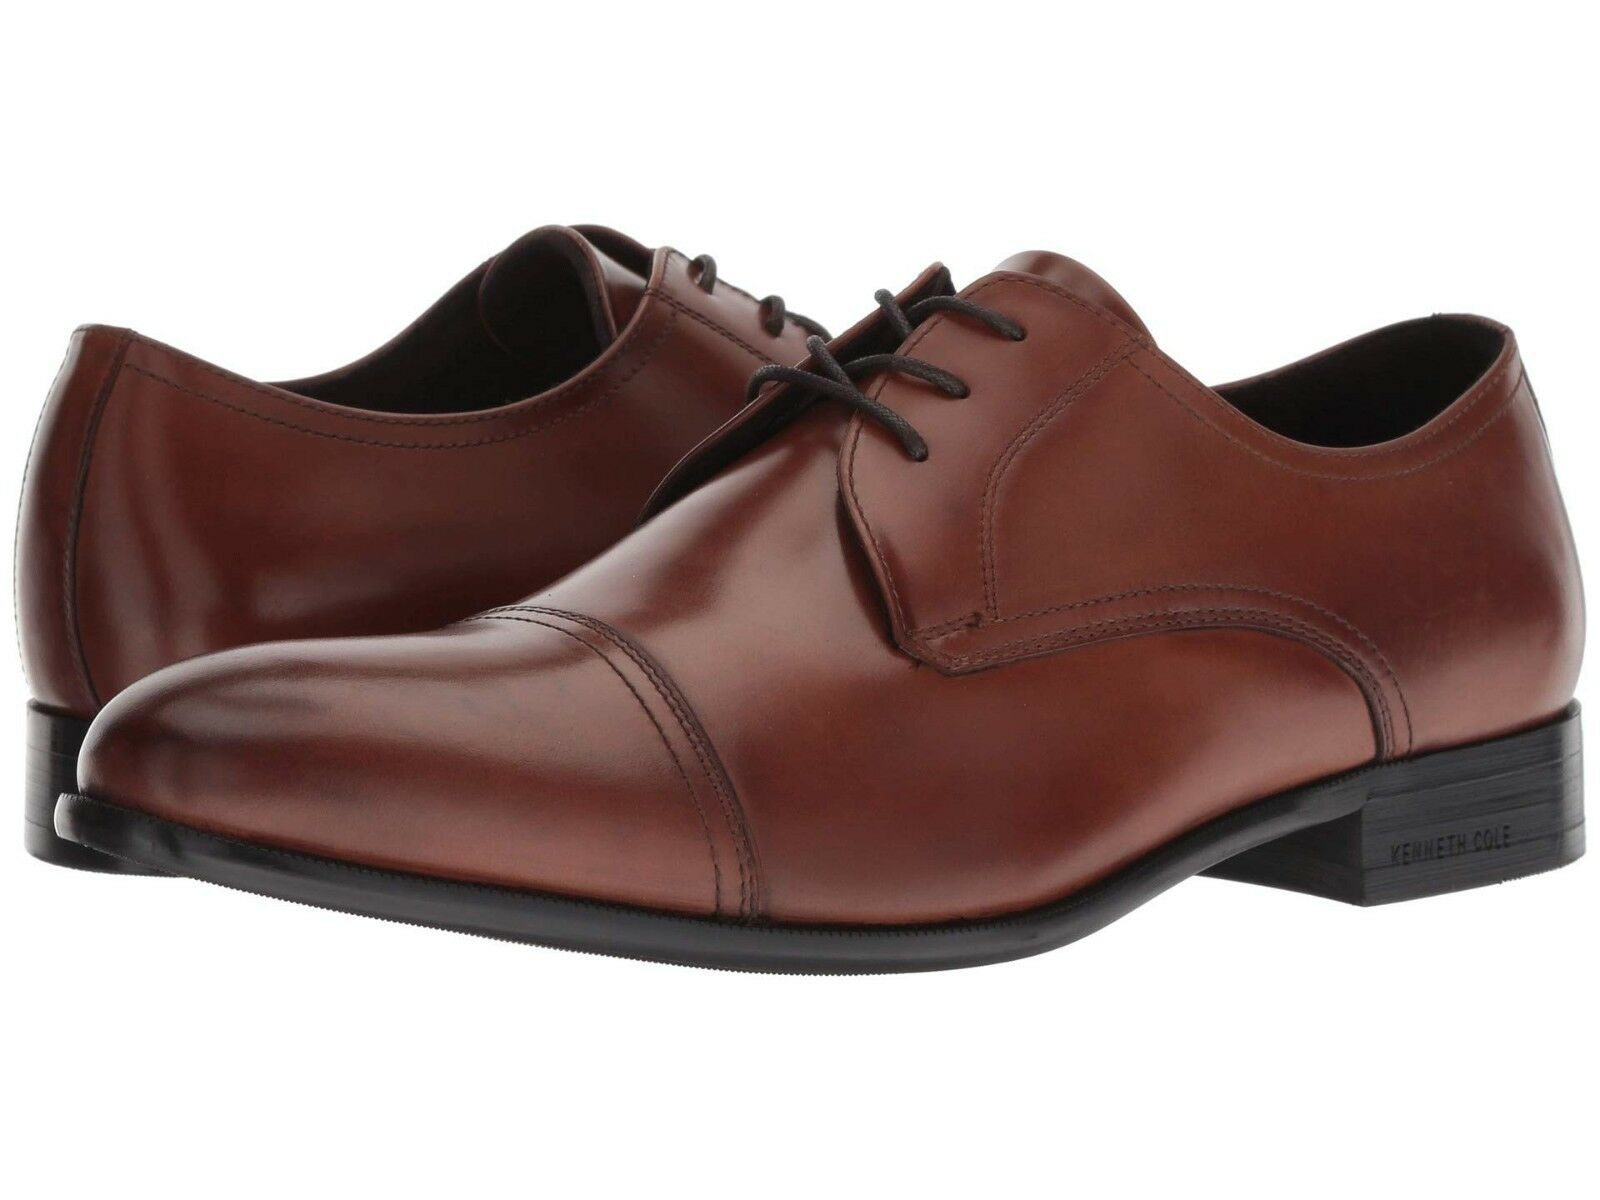 Men's Shoes Kenneth Cole Capital Lace-Up Oxfords KMF8132LE Brandy Leather *New*